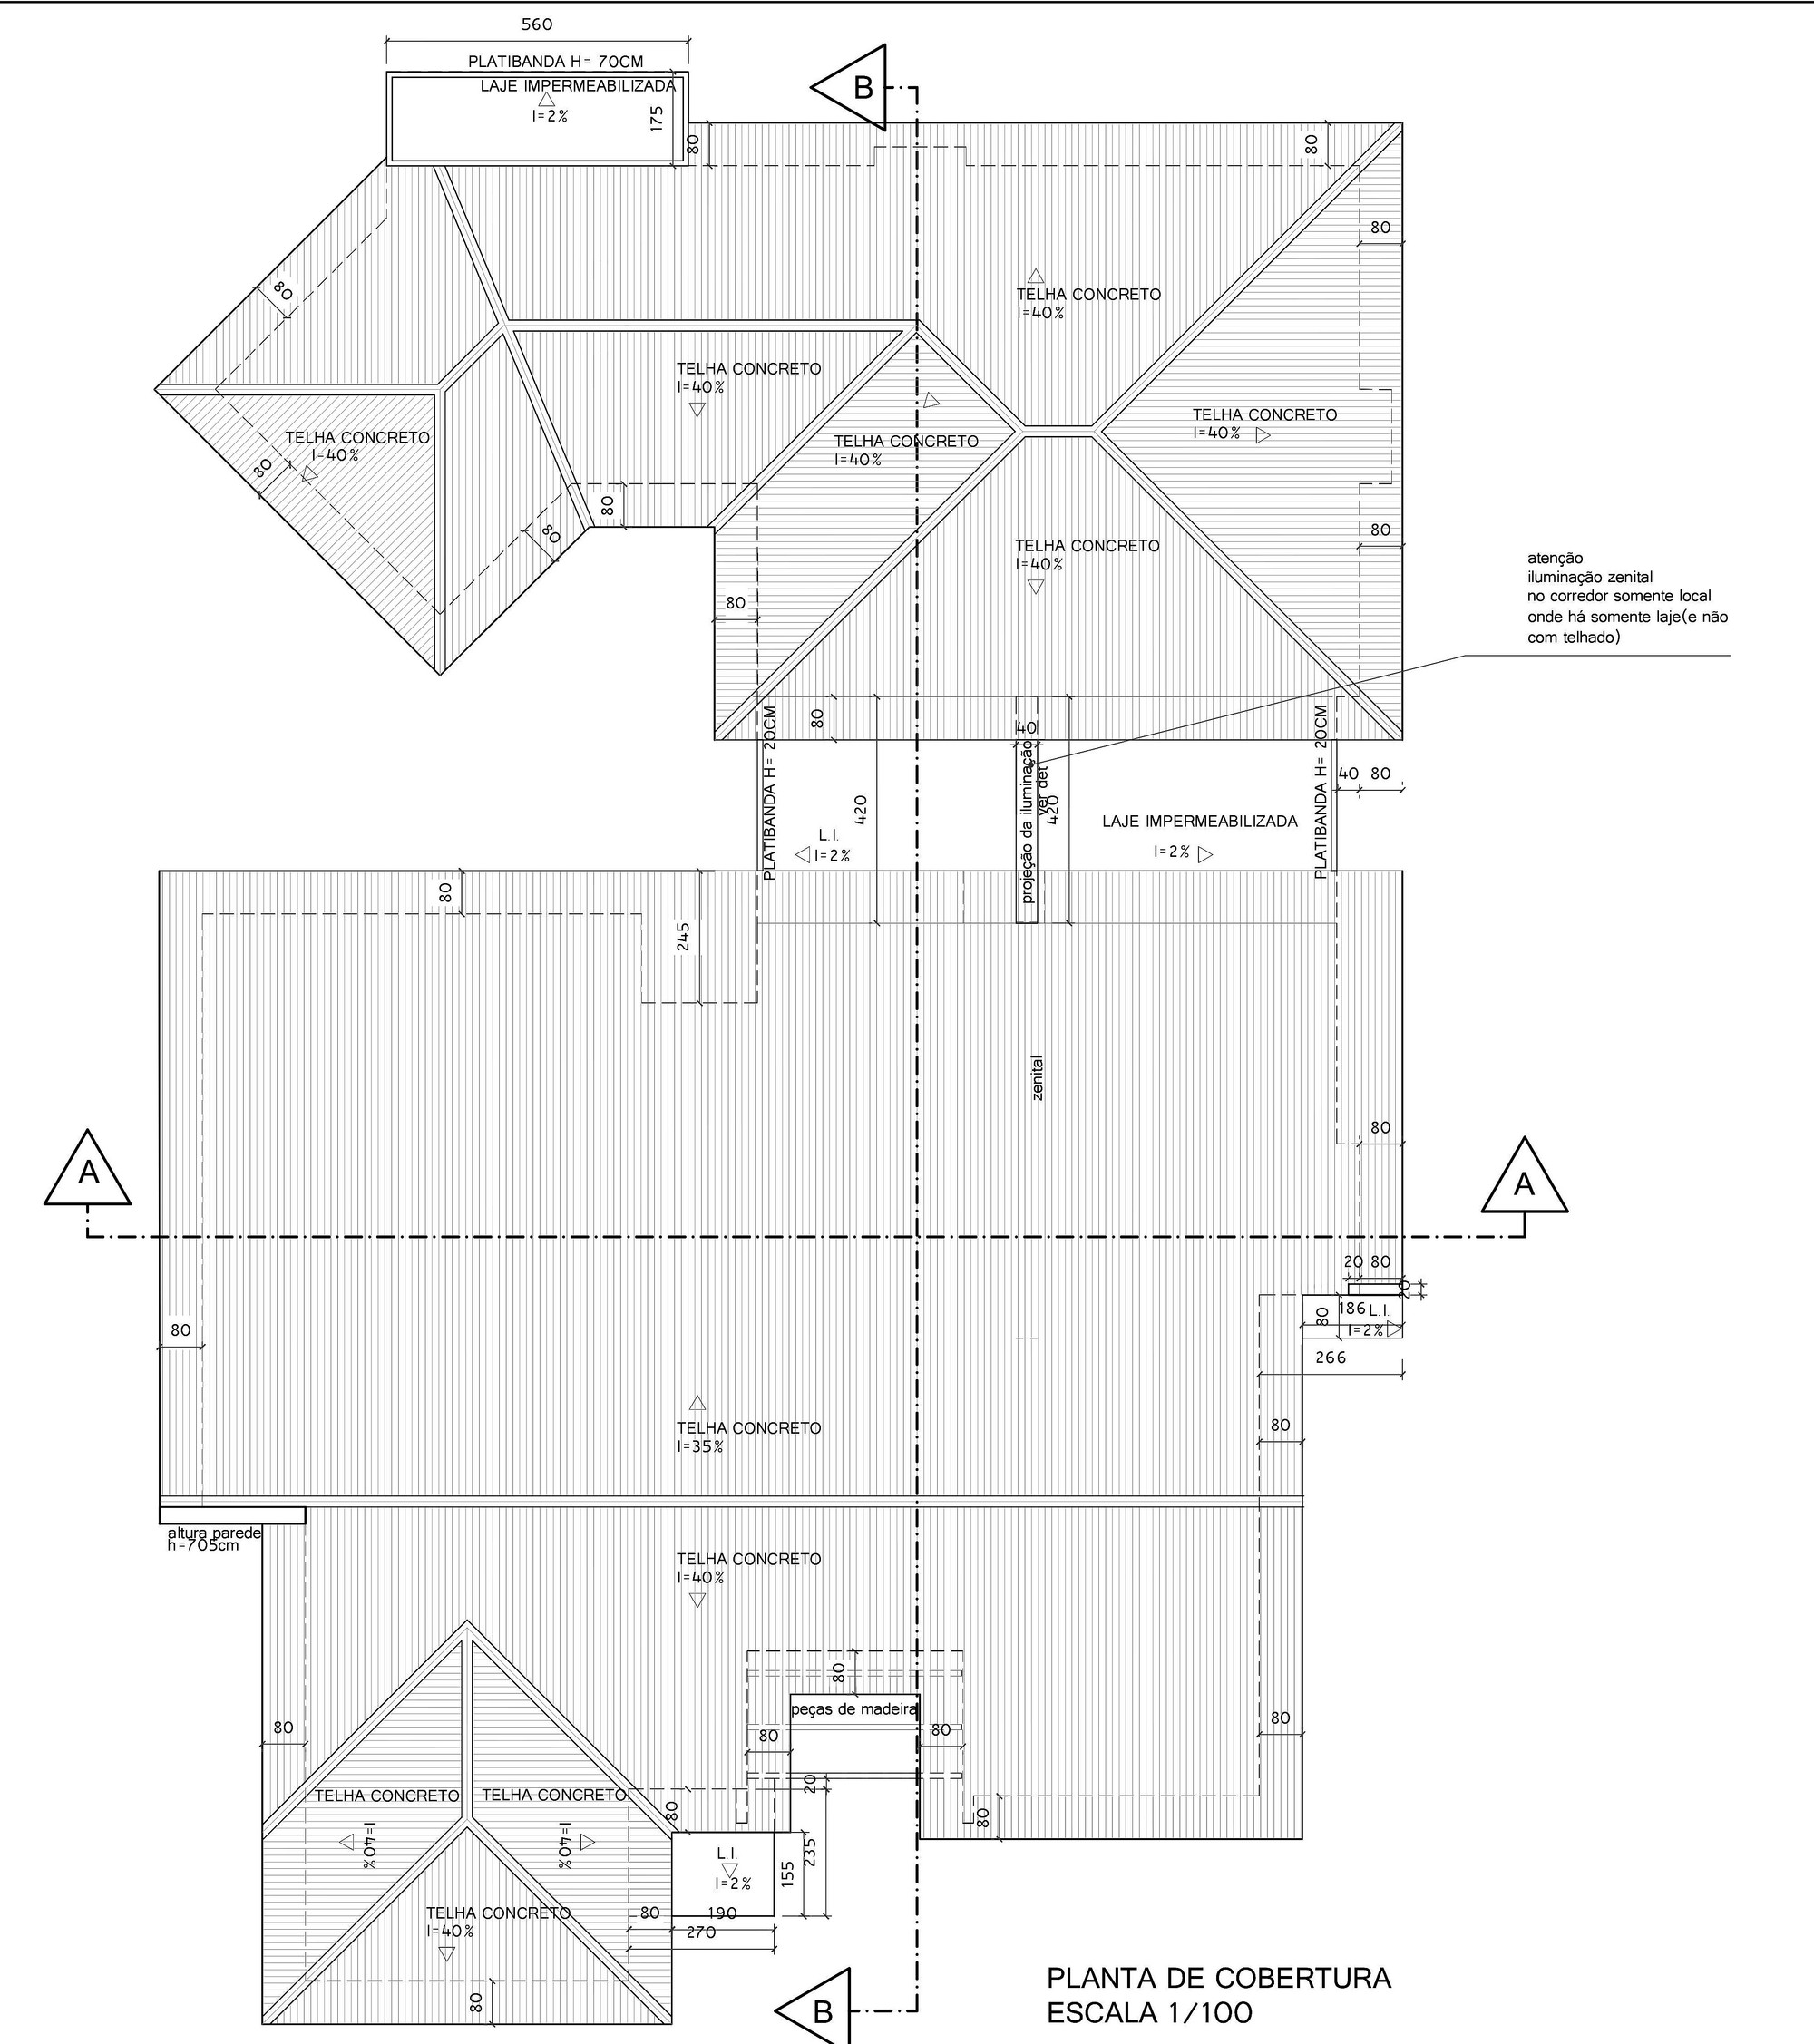 Aberdeen Mosque Building also Fish Diagrams Printable additionally 5872aba4e58ecedb930000dd House In Pasargada Masv Amalia Vieira Arquitetura Diagram Roof as well Foam Fixed Fire Fighting System Line Diagram as well 17 Top Photos Ideas For Hip Roof Plan. on roof diagram